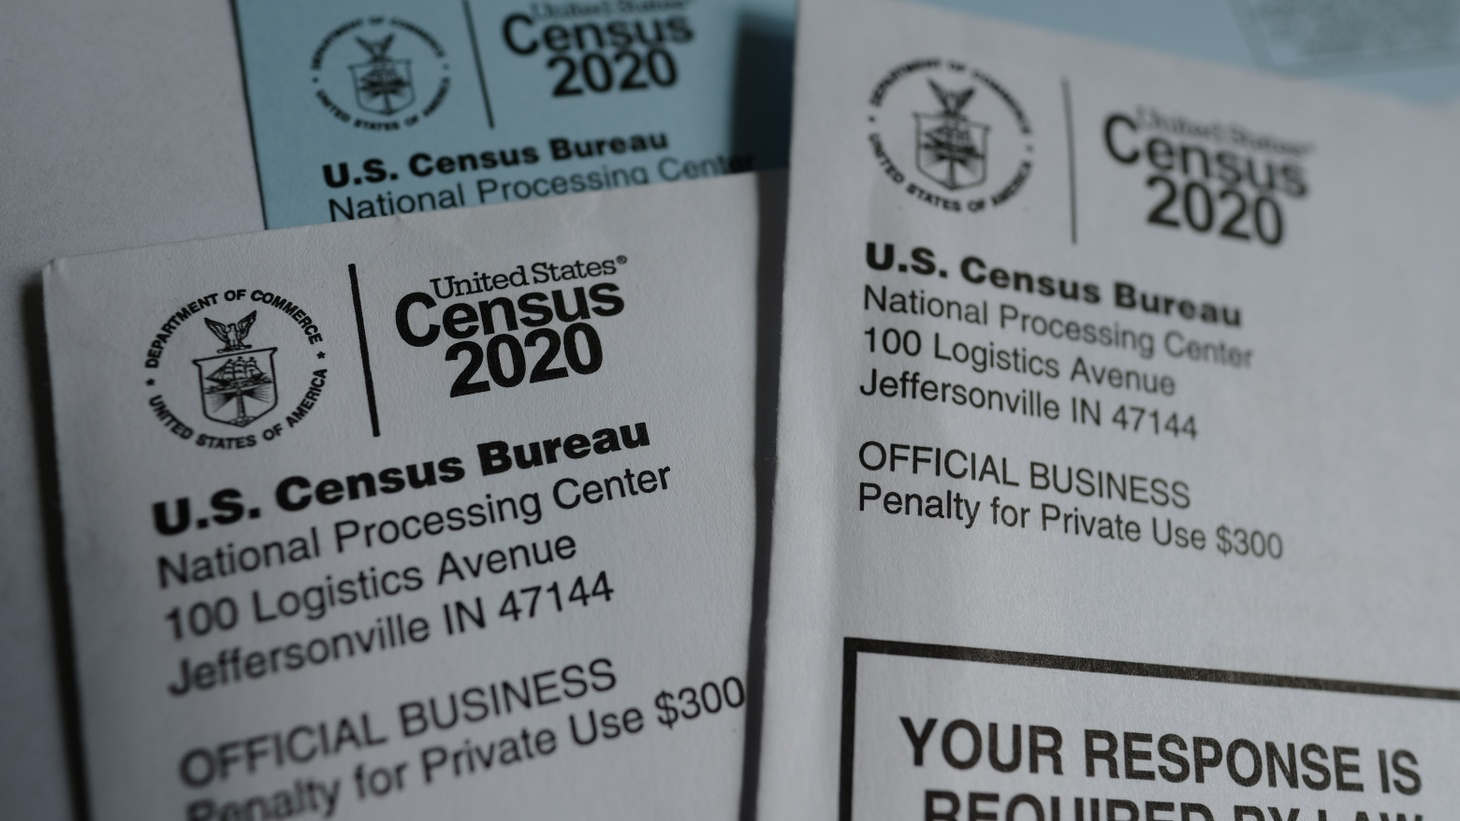 Mail containing information on the 2020 Census from the United States Census Bureau pictured in Portland, Ore., on April 6, 2020.